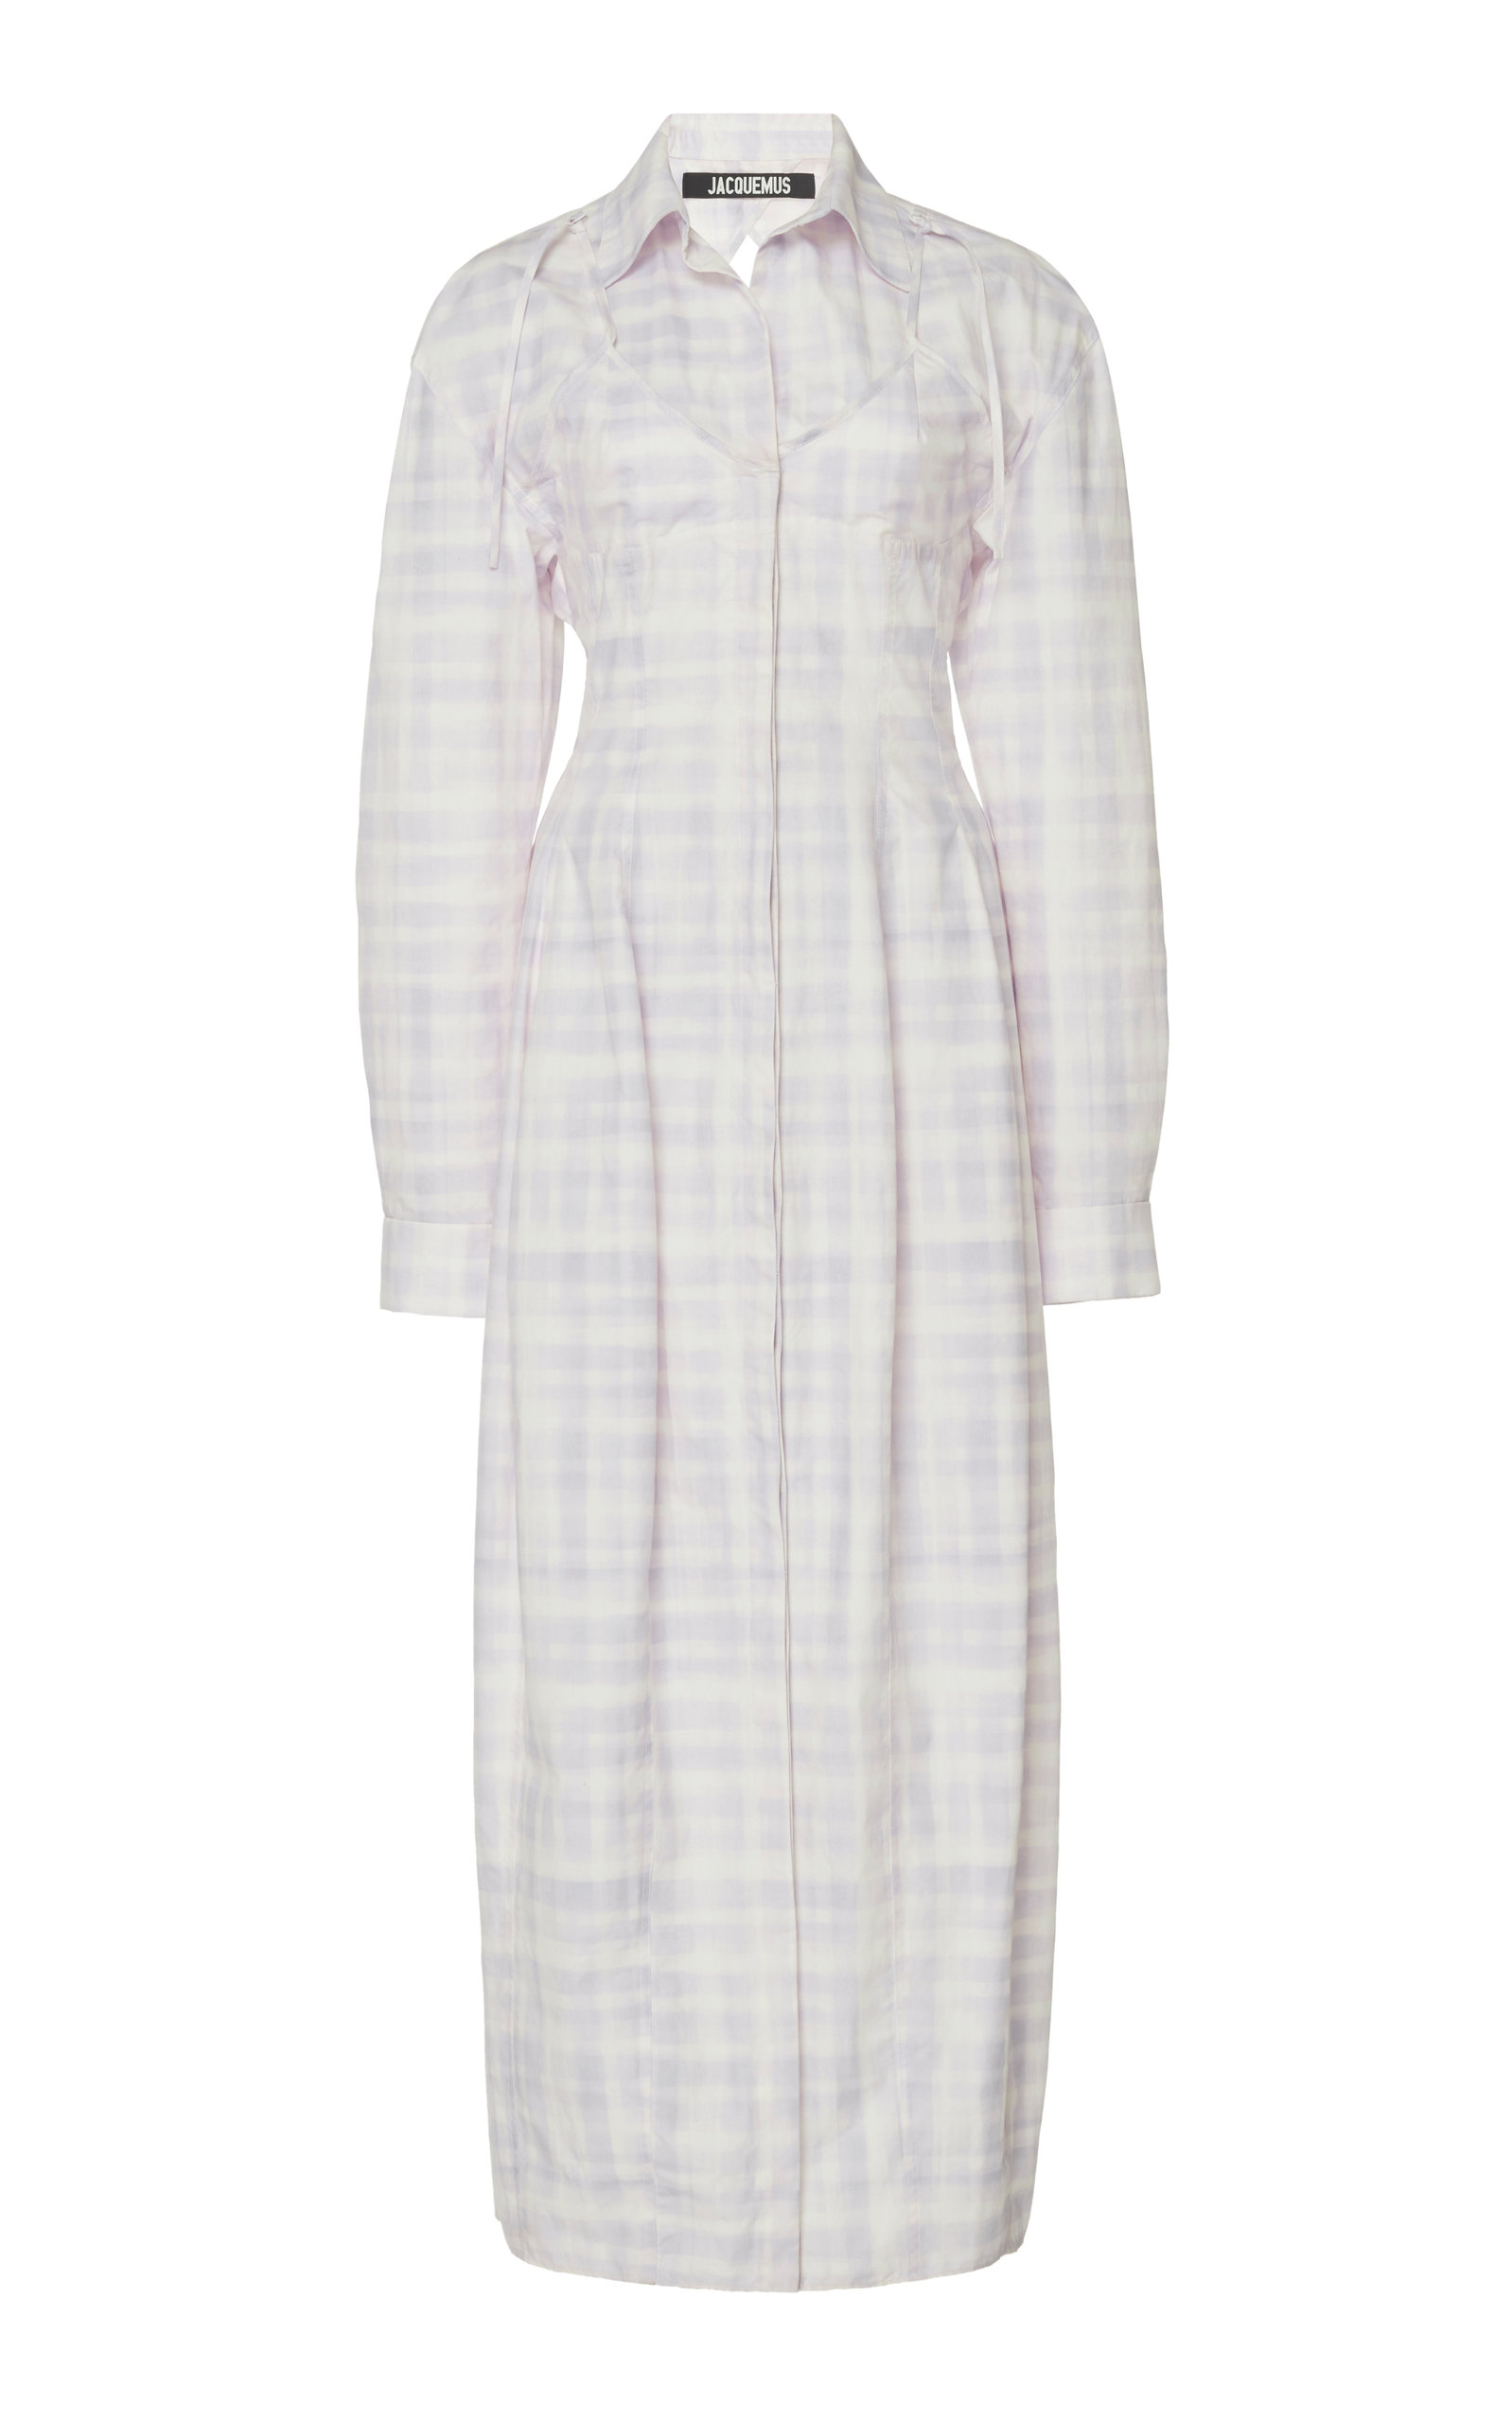 Buy Jacquemus La Robe Valensole Checked Midi Shirt Dress online, shop Jacquemus at the best price